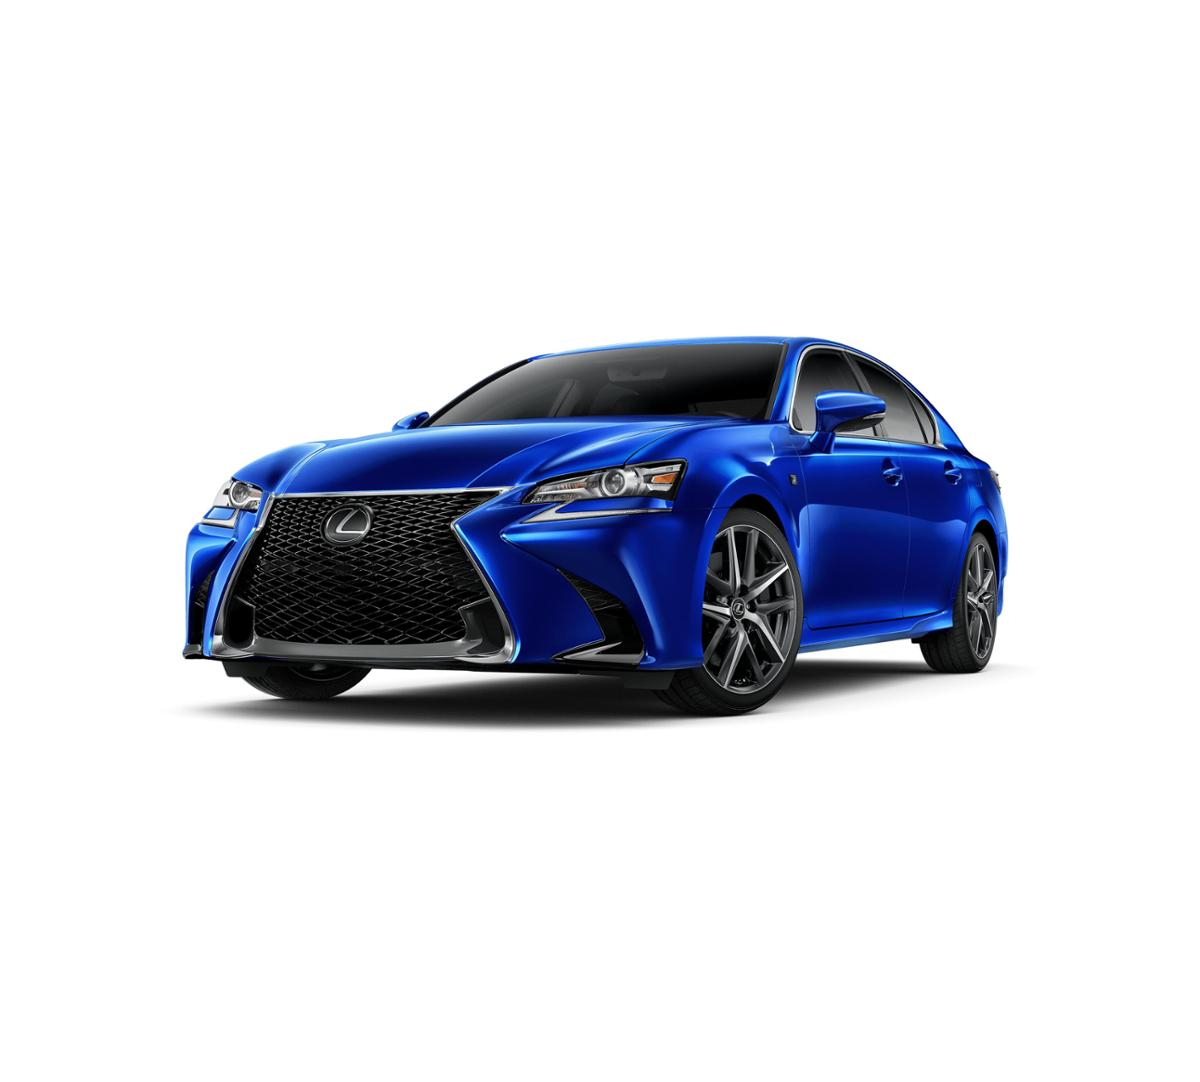 2017 ultrasonic blue mica f sport lexus gs 350 for sale in colma jthbz1bl8ha011358 lexus of. Black Bedroom Furniture Sets. Home Design Ideas